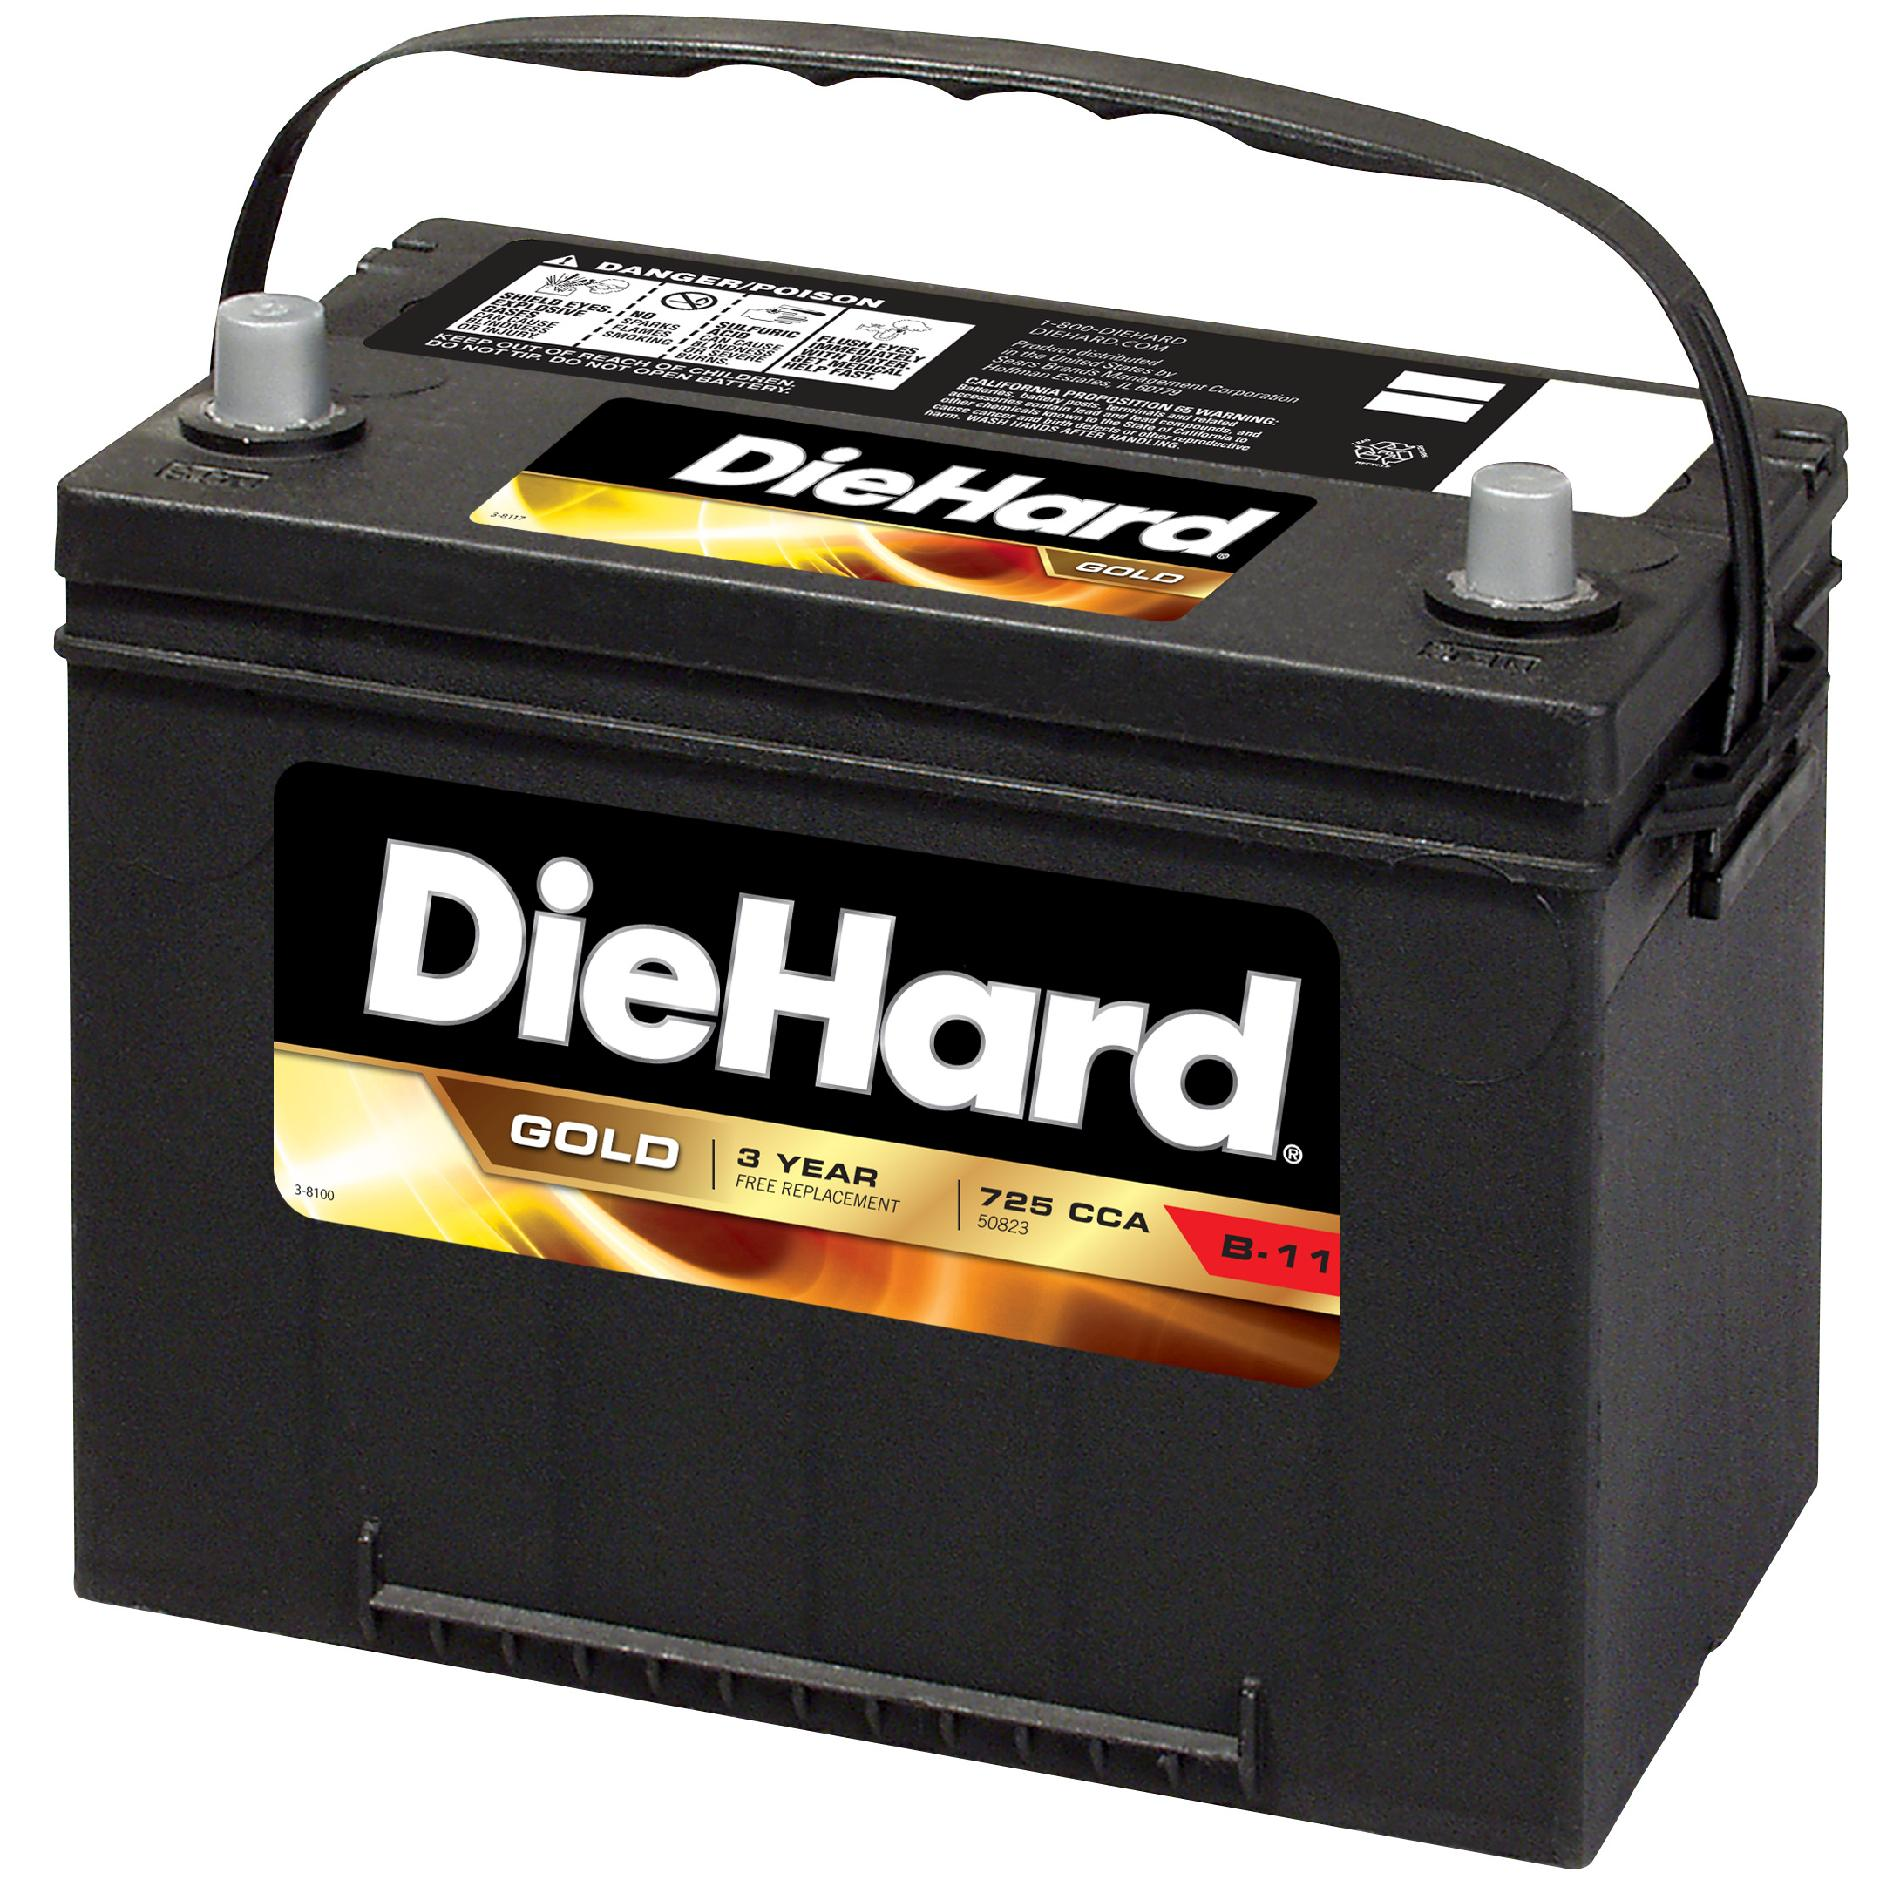 small resolution of diehard gold automotive battery group size ep 24f price with exchange